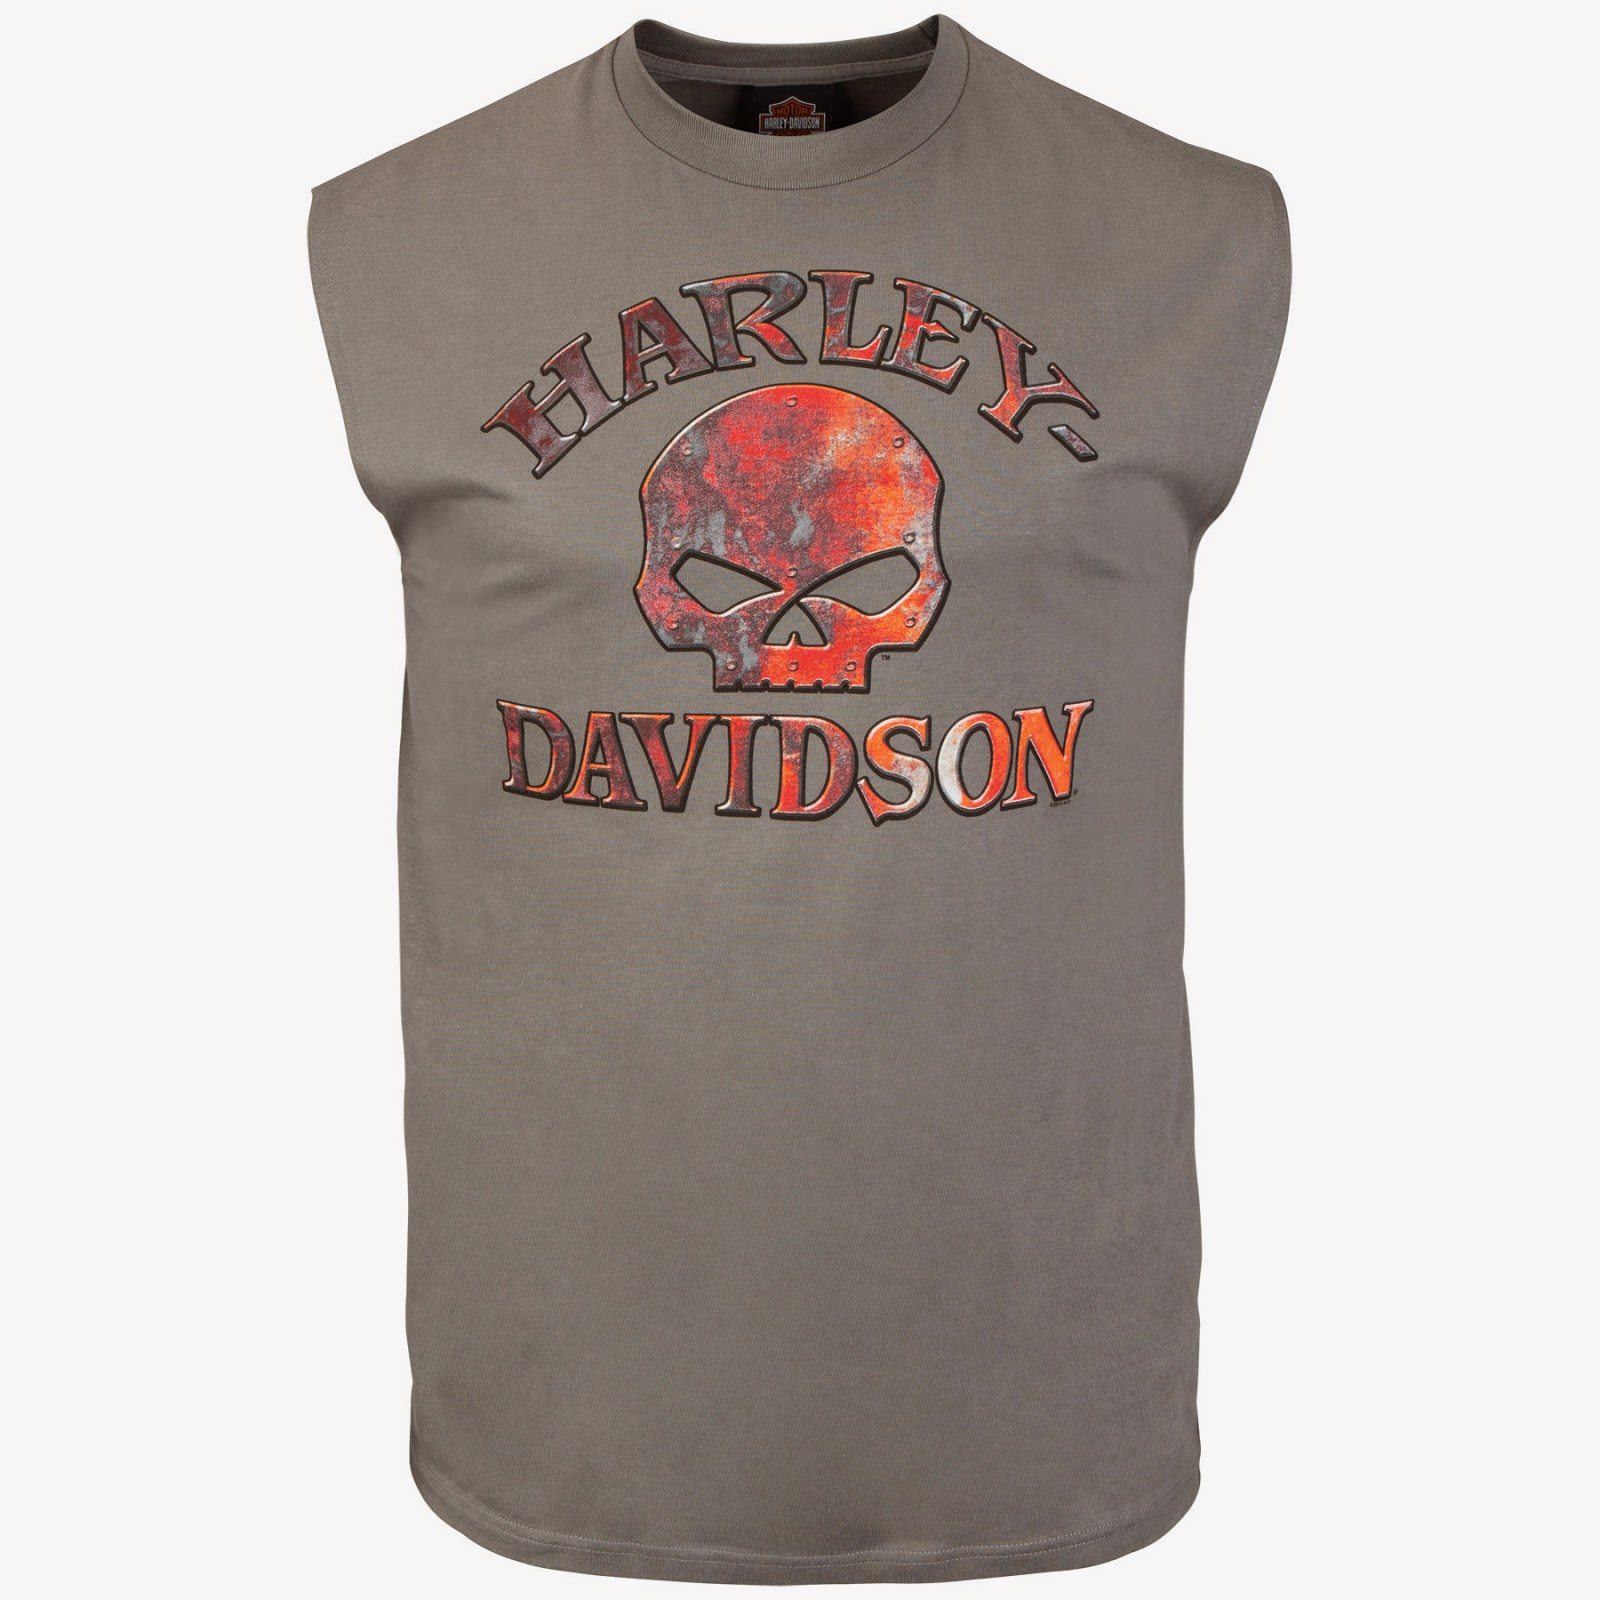 harley davidson t shirts. Black Bedroom Furniture Sets. Home Design Ideas